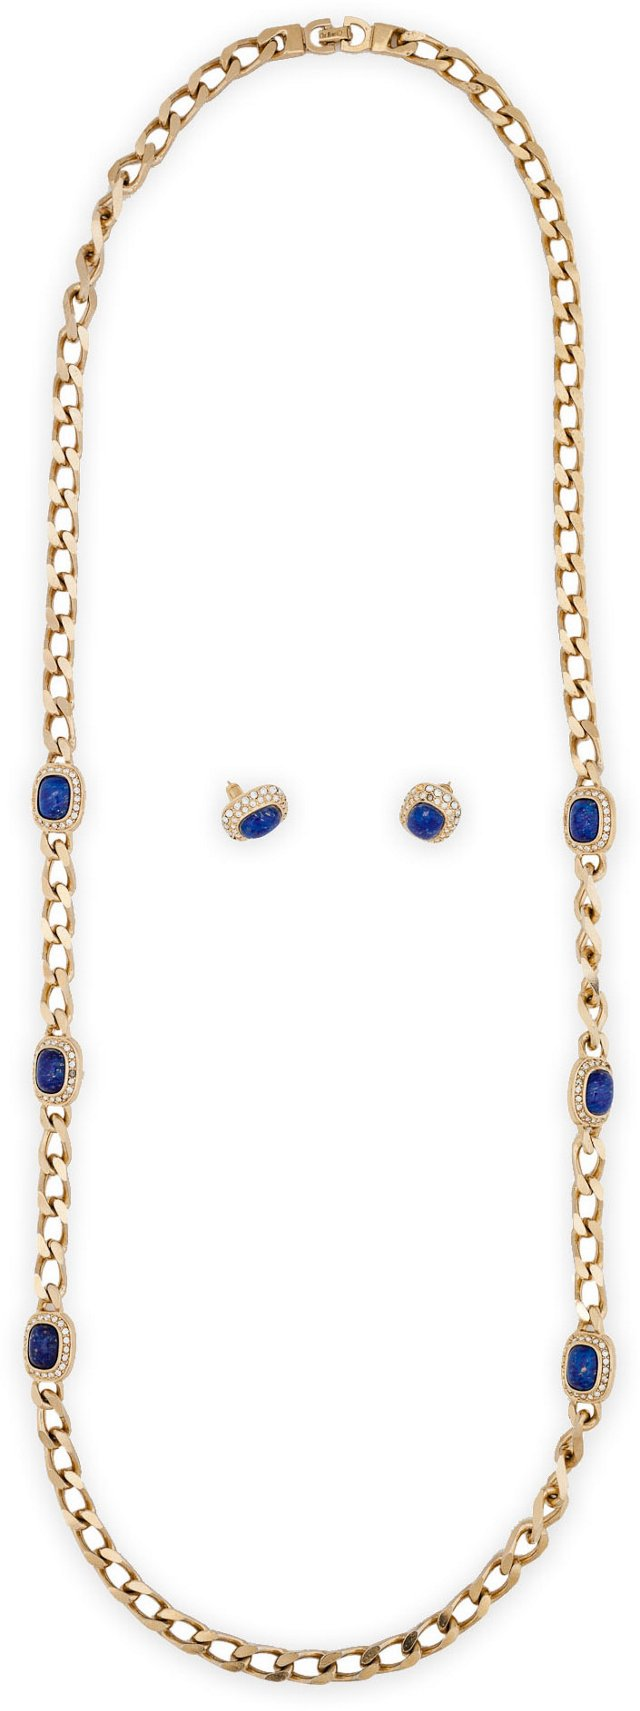 Christian Dior Necklace & Earrings Set